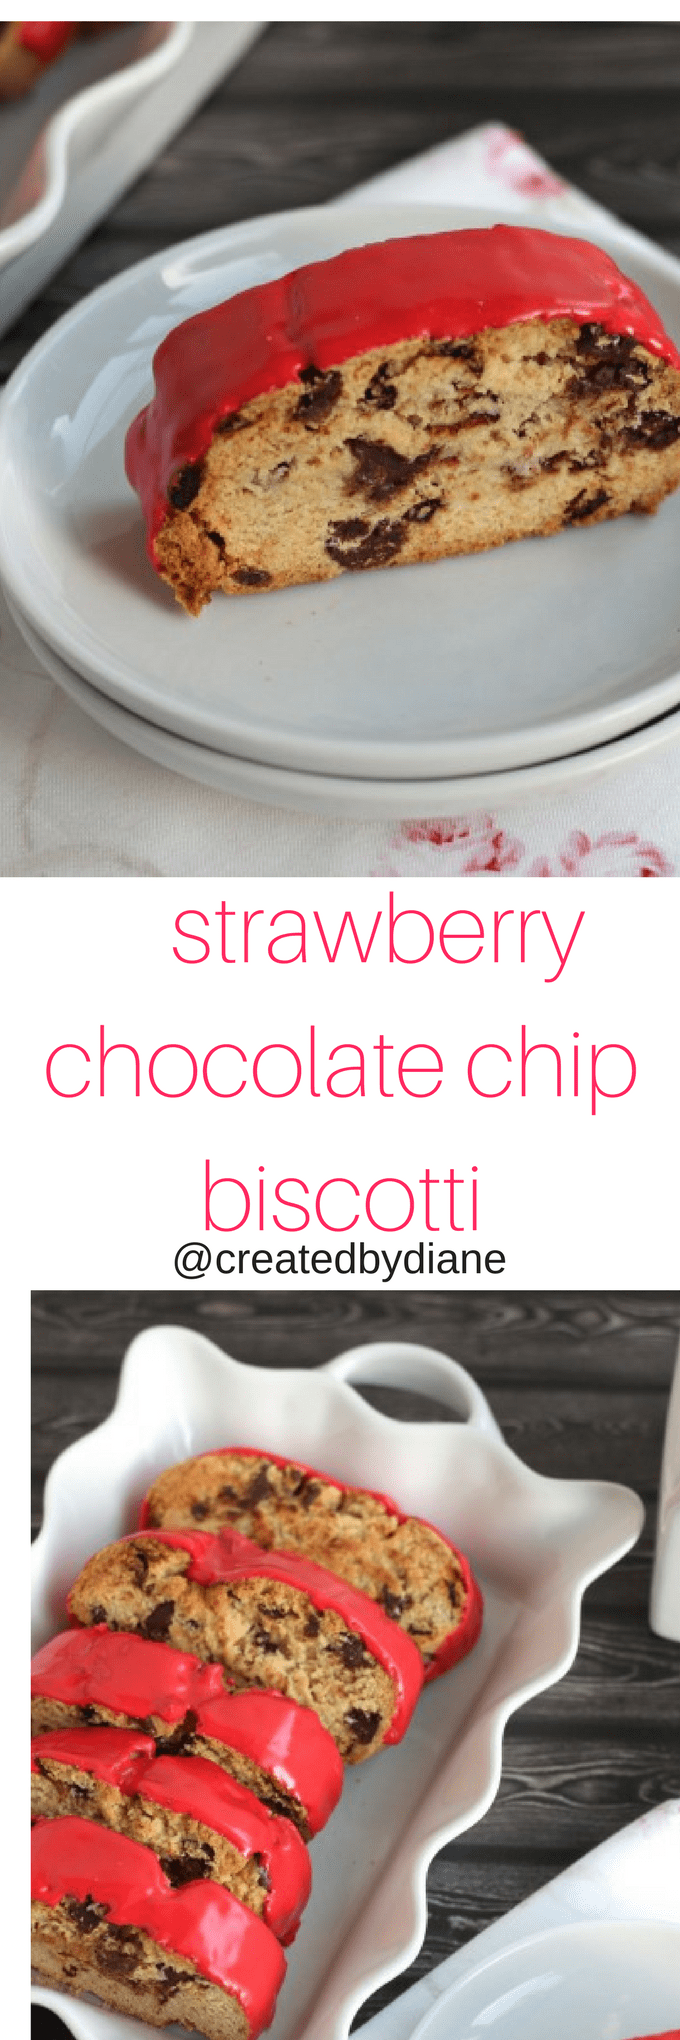 strawberry chocolate chip biscotti @createdbydiane